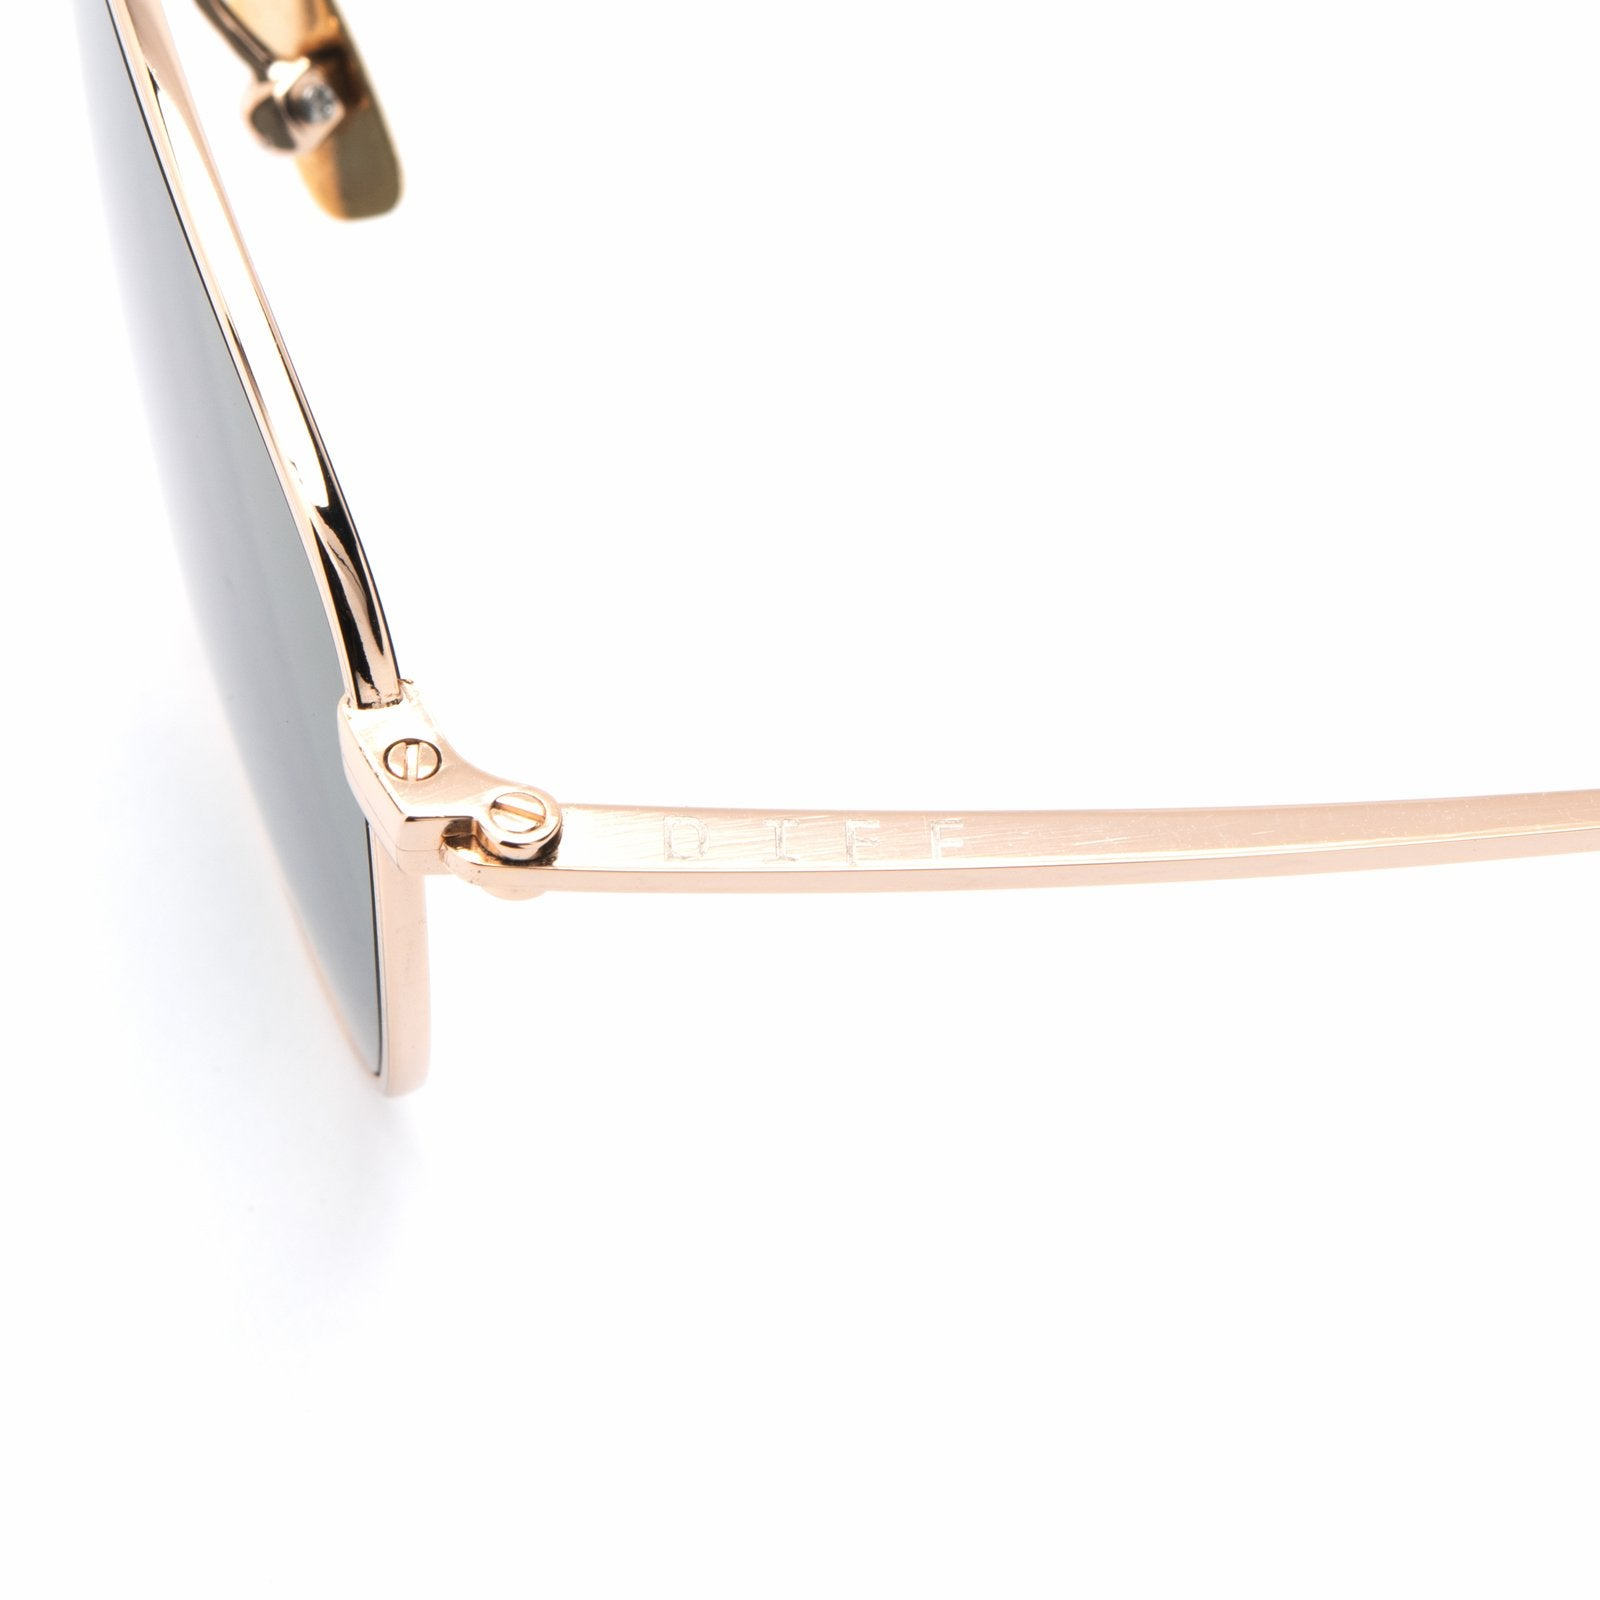 Axel sunglasses with gold frames and red mirror lens detailed shot